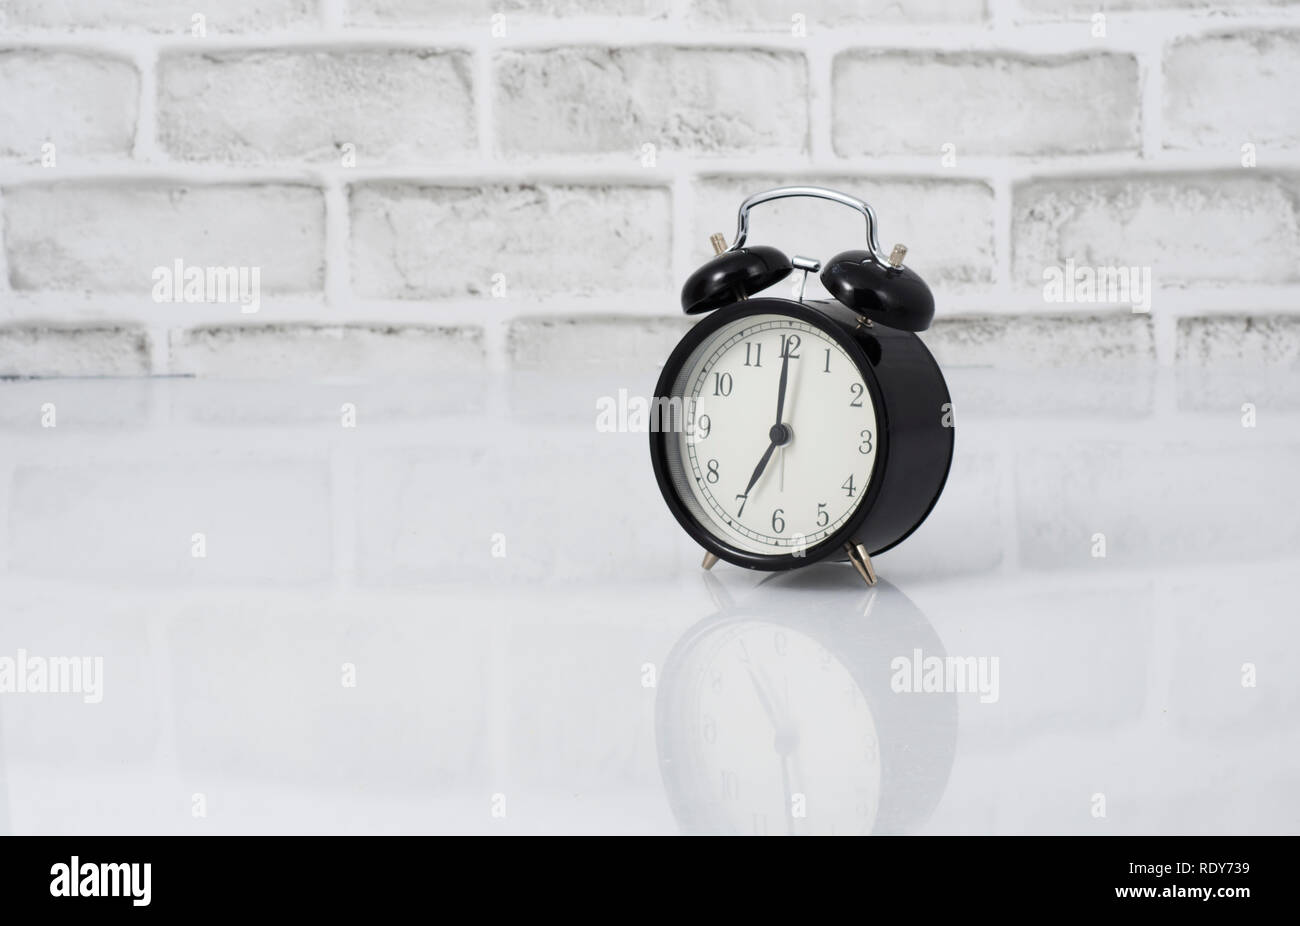 A vintage black alarm clock reading 7 am on a white brick wall background Stock Photo